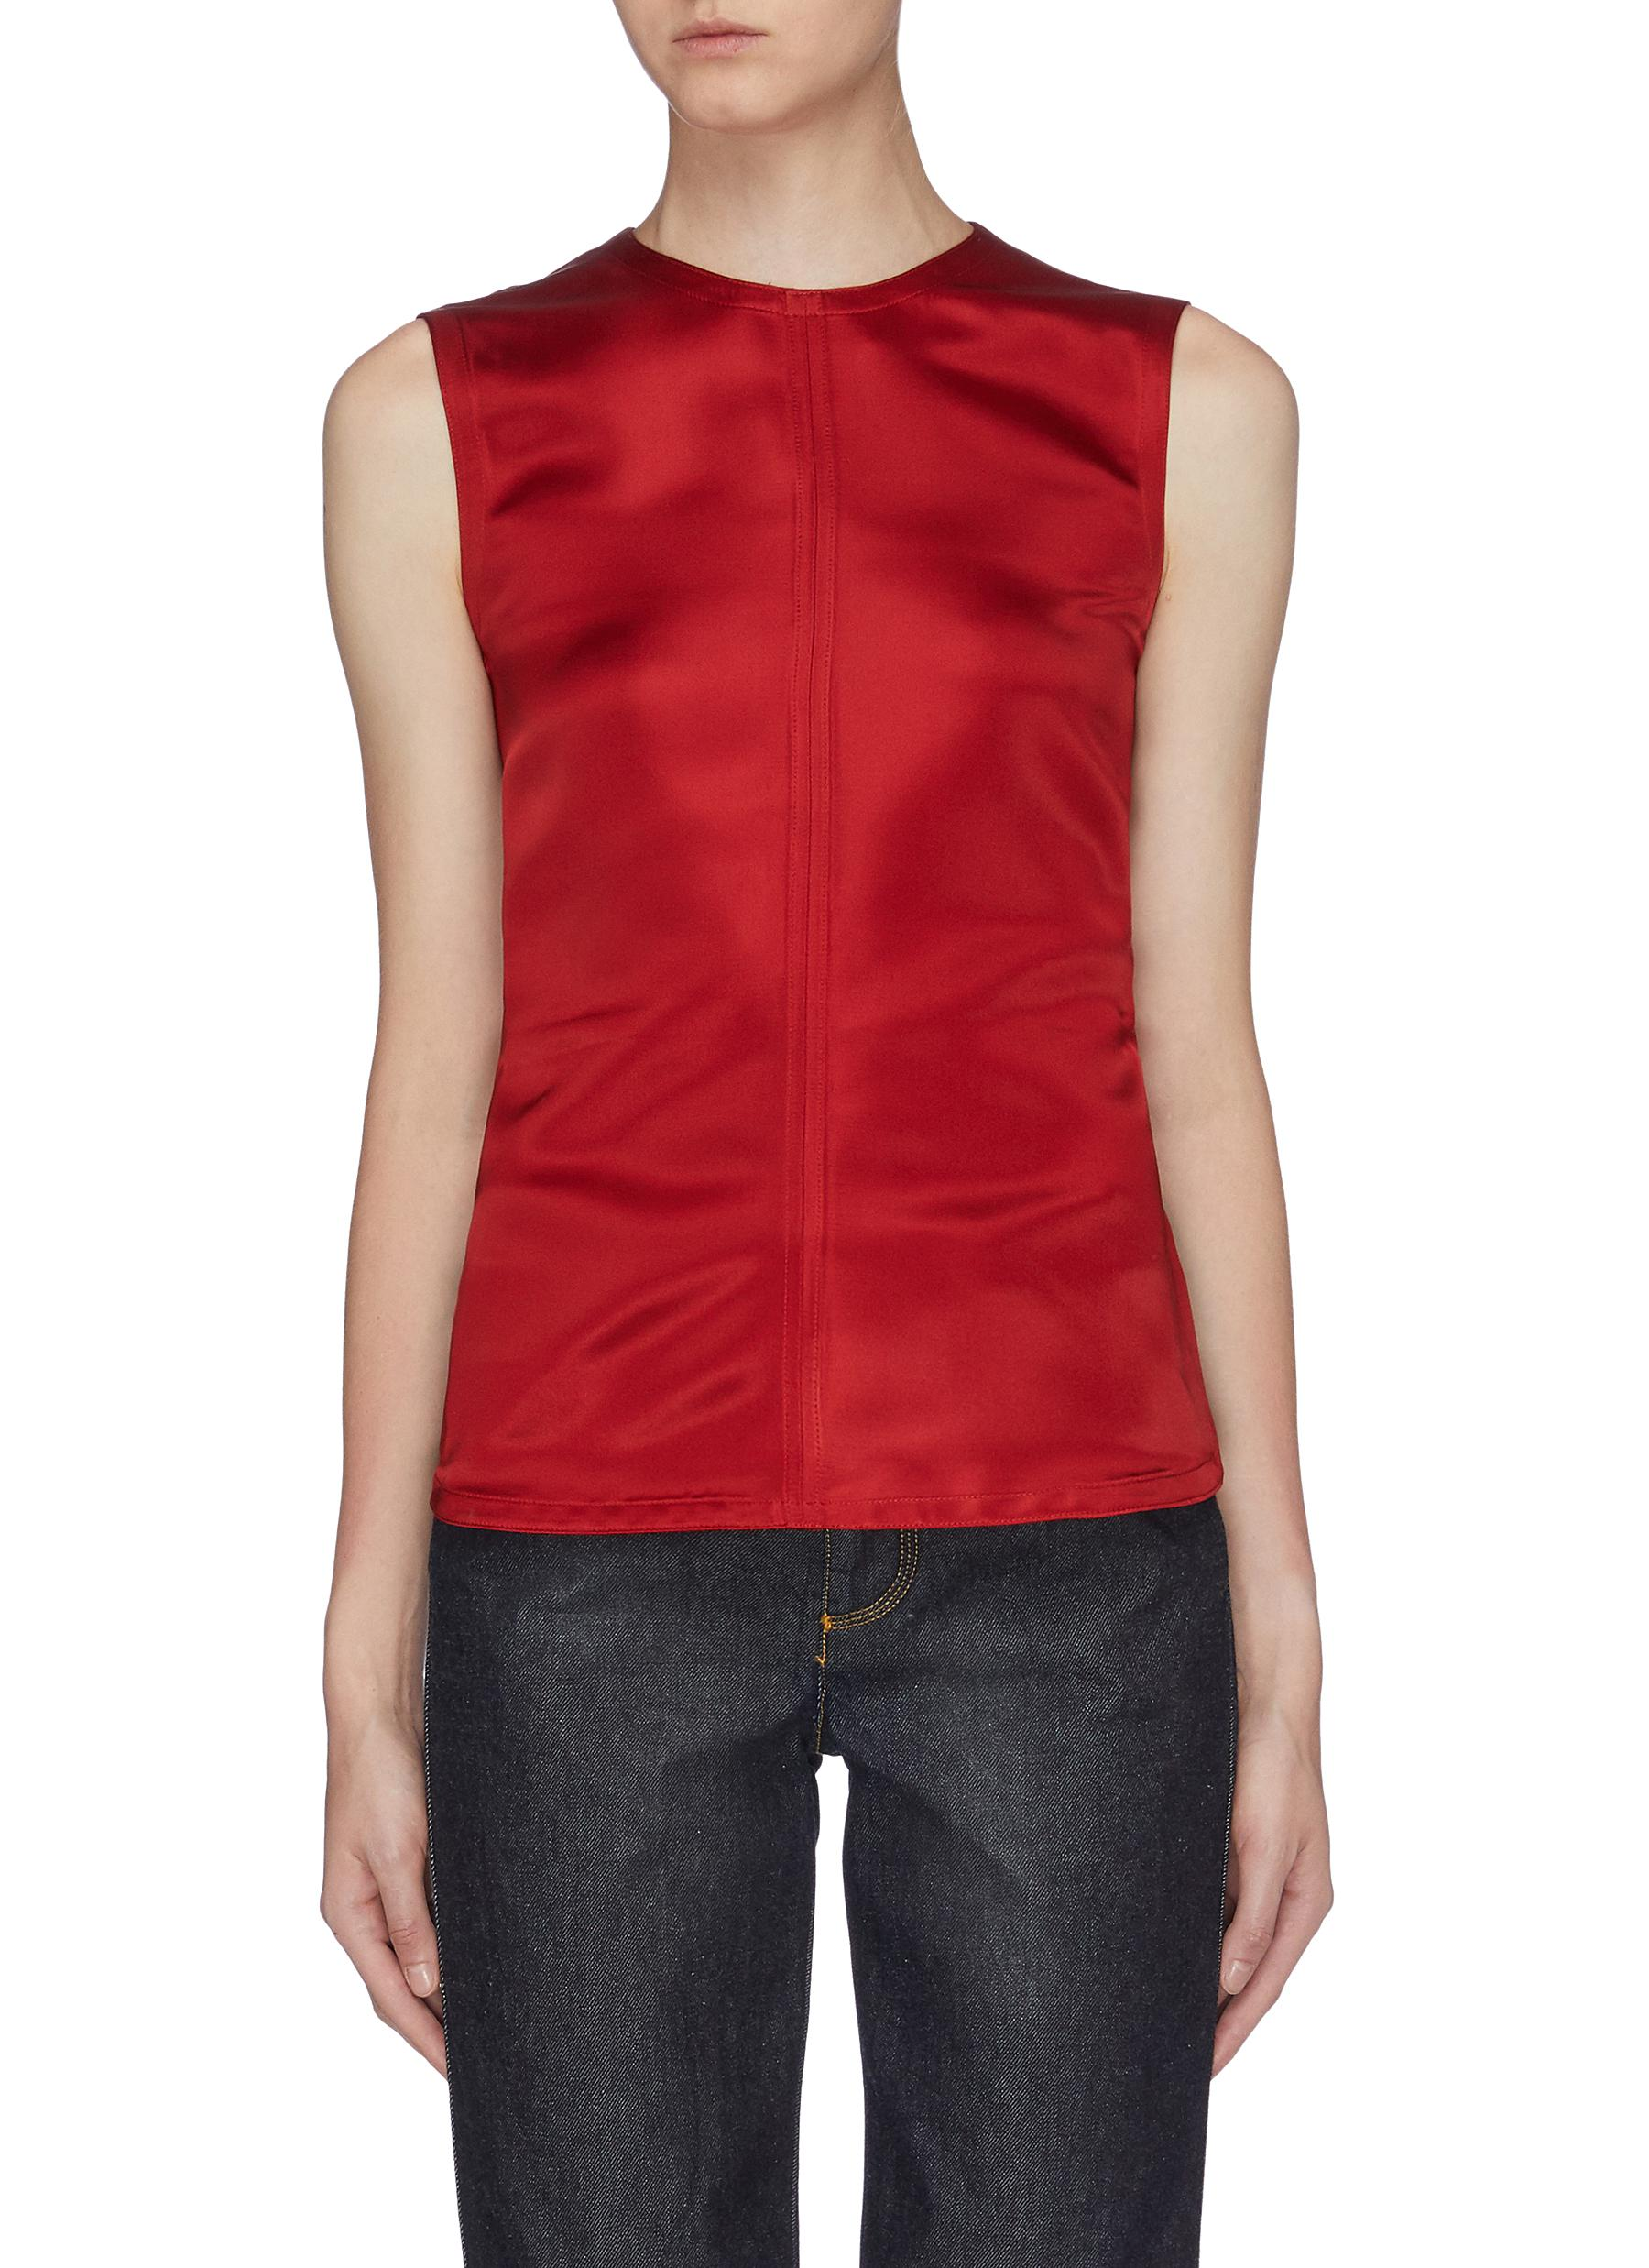 Cutout open back sleeveless satin top by Helmut Lang